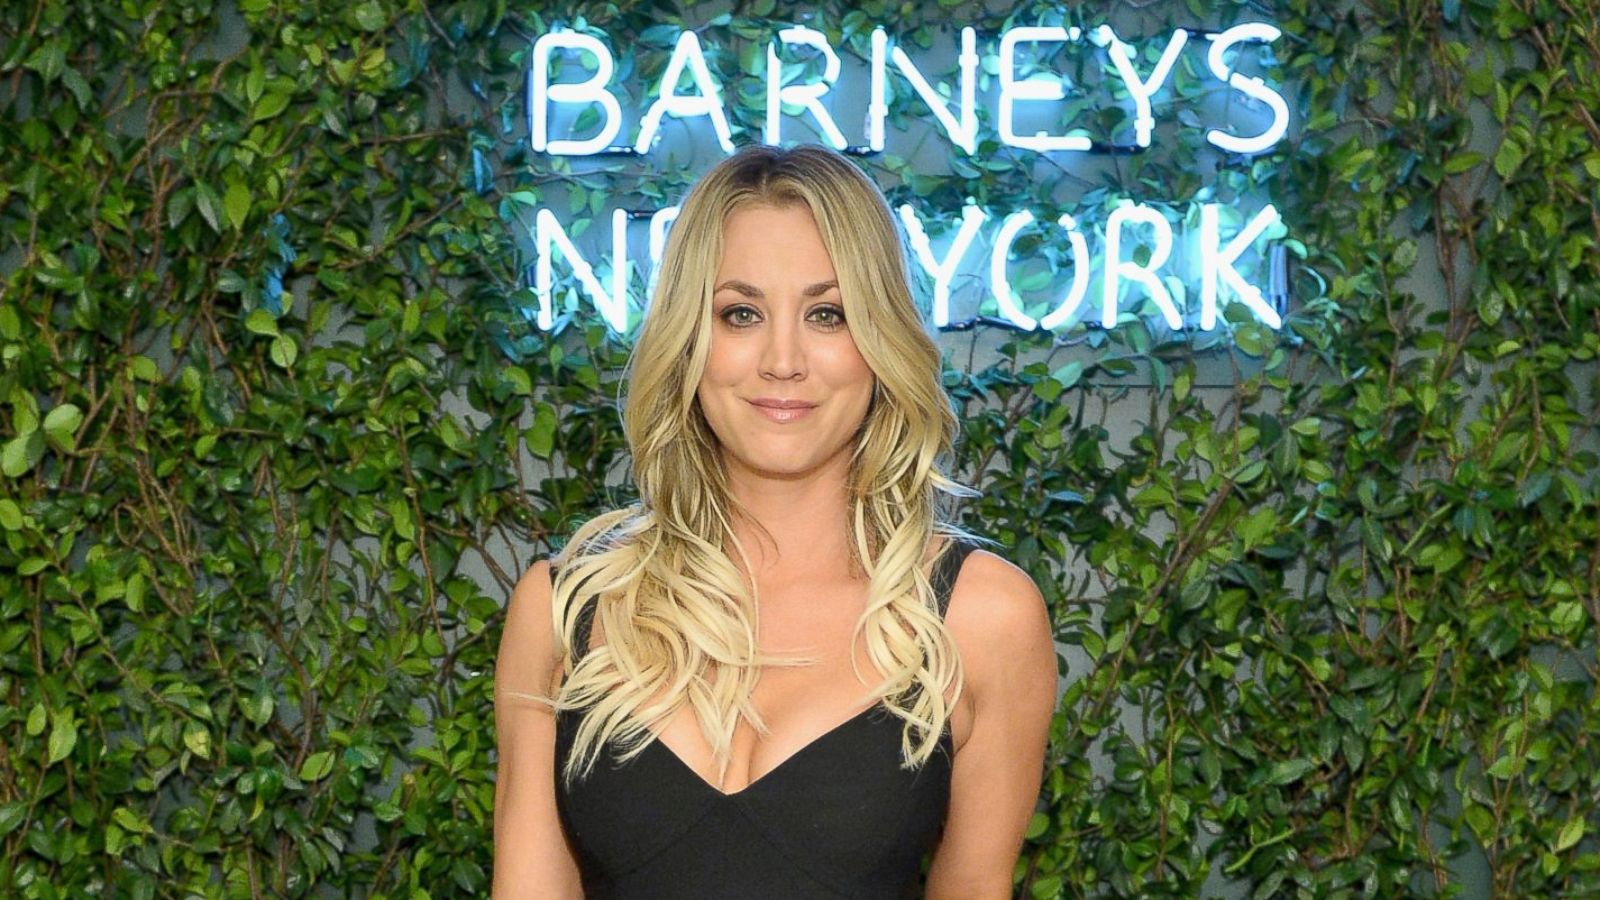 Kaley Cuoco Admits to Plastic Surgery: 'I Had My Nose Done and My Boobs' -  ABC News